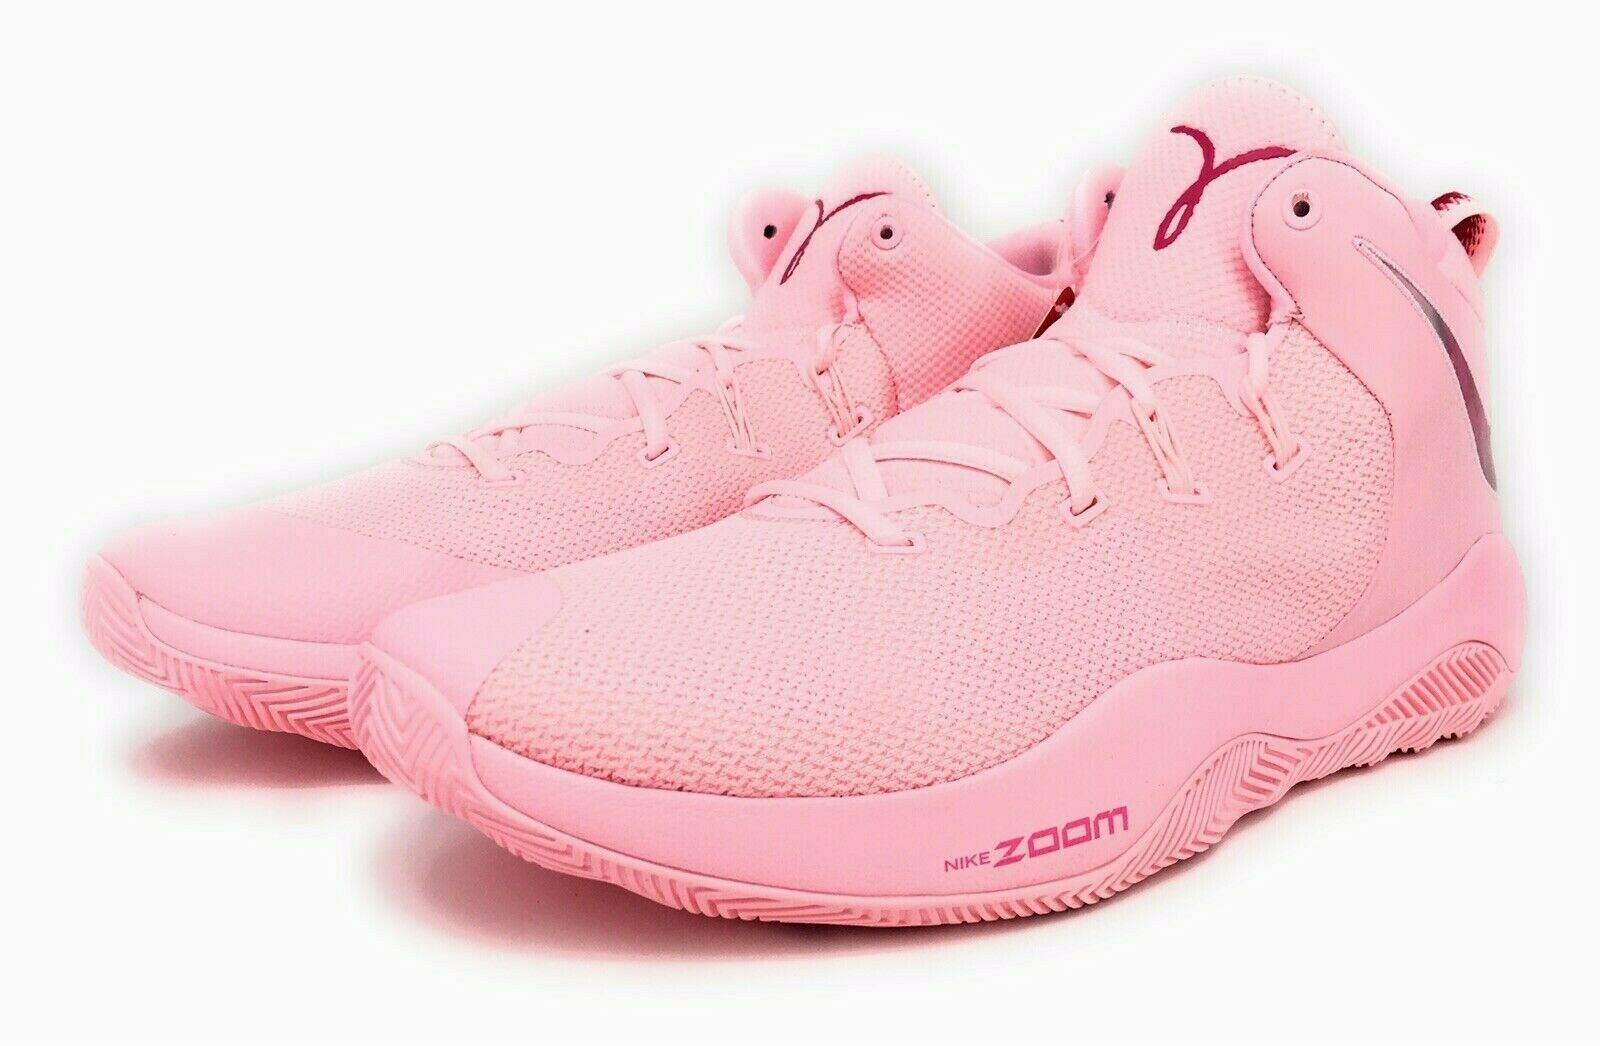 Nike Zoom Rev II TB PROMO KAY YOW Breast Cancer Awareness Fund Pink Mens Size 15